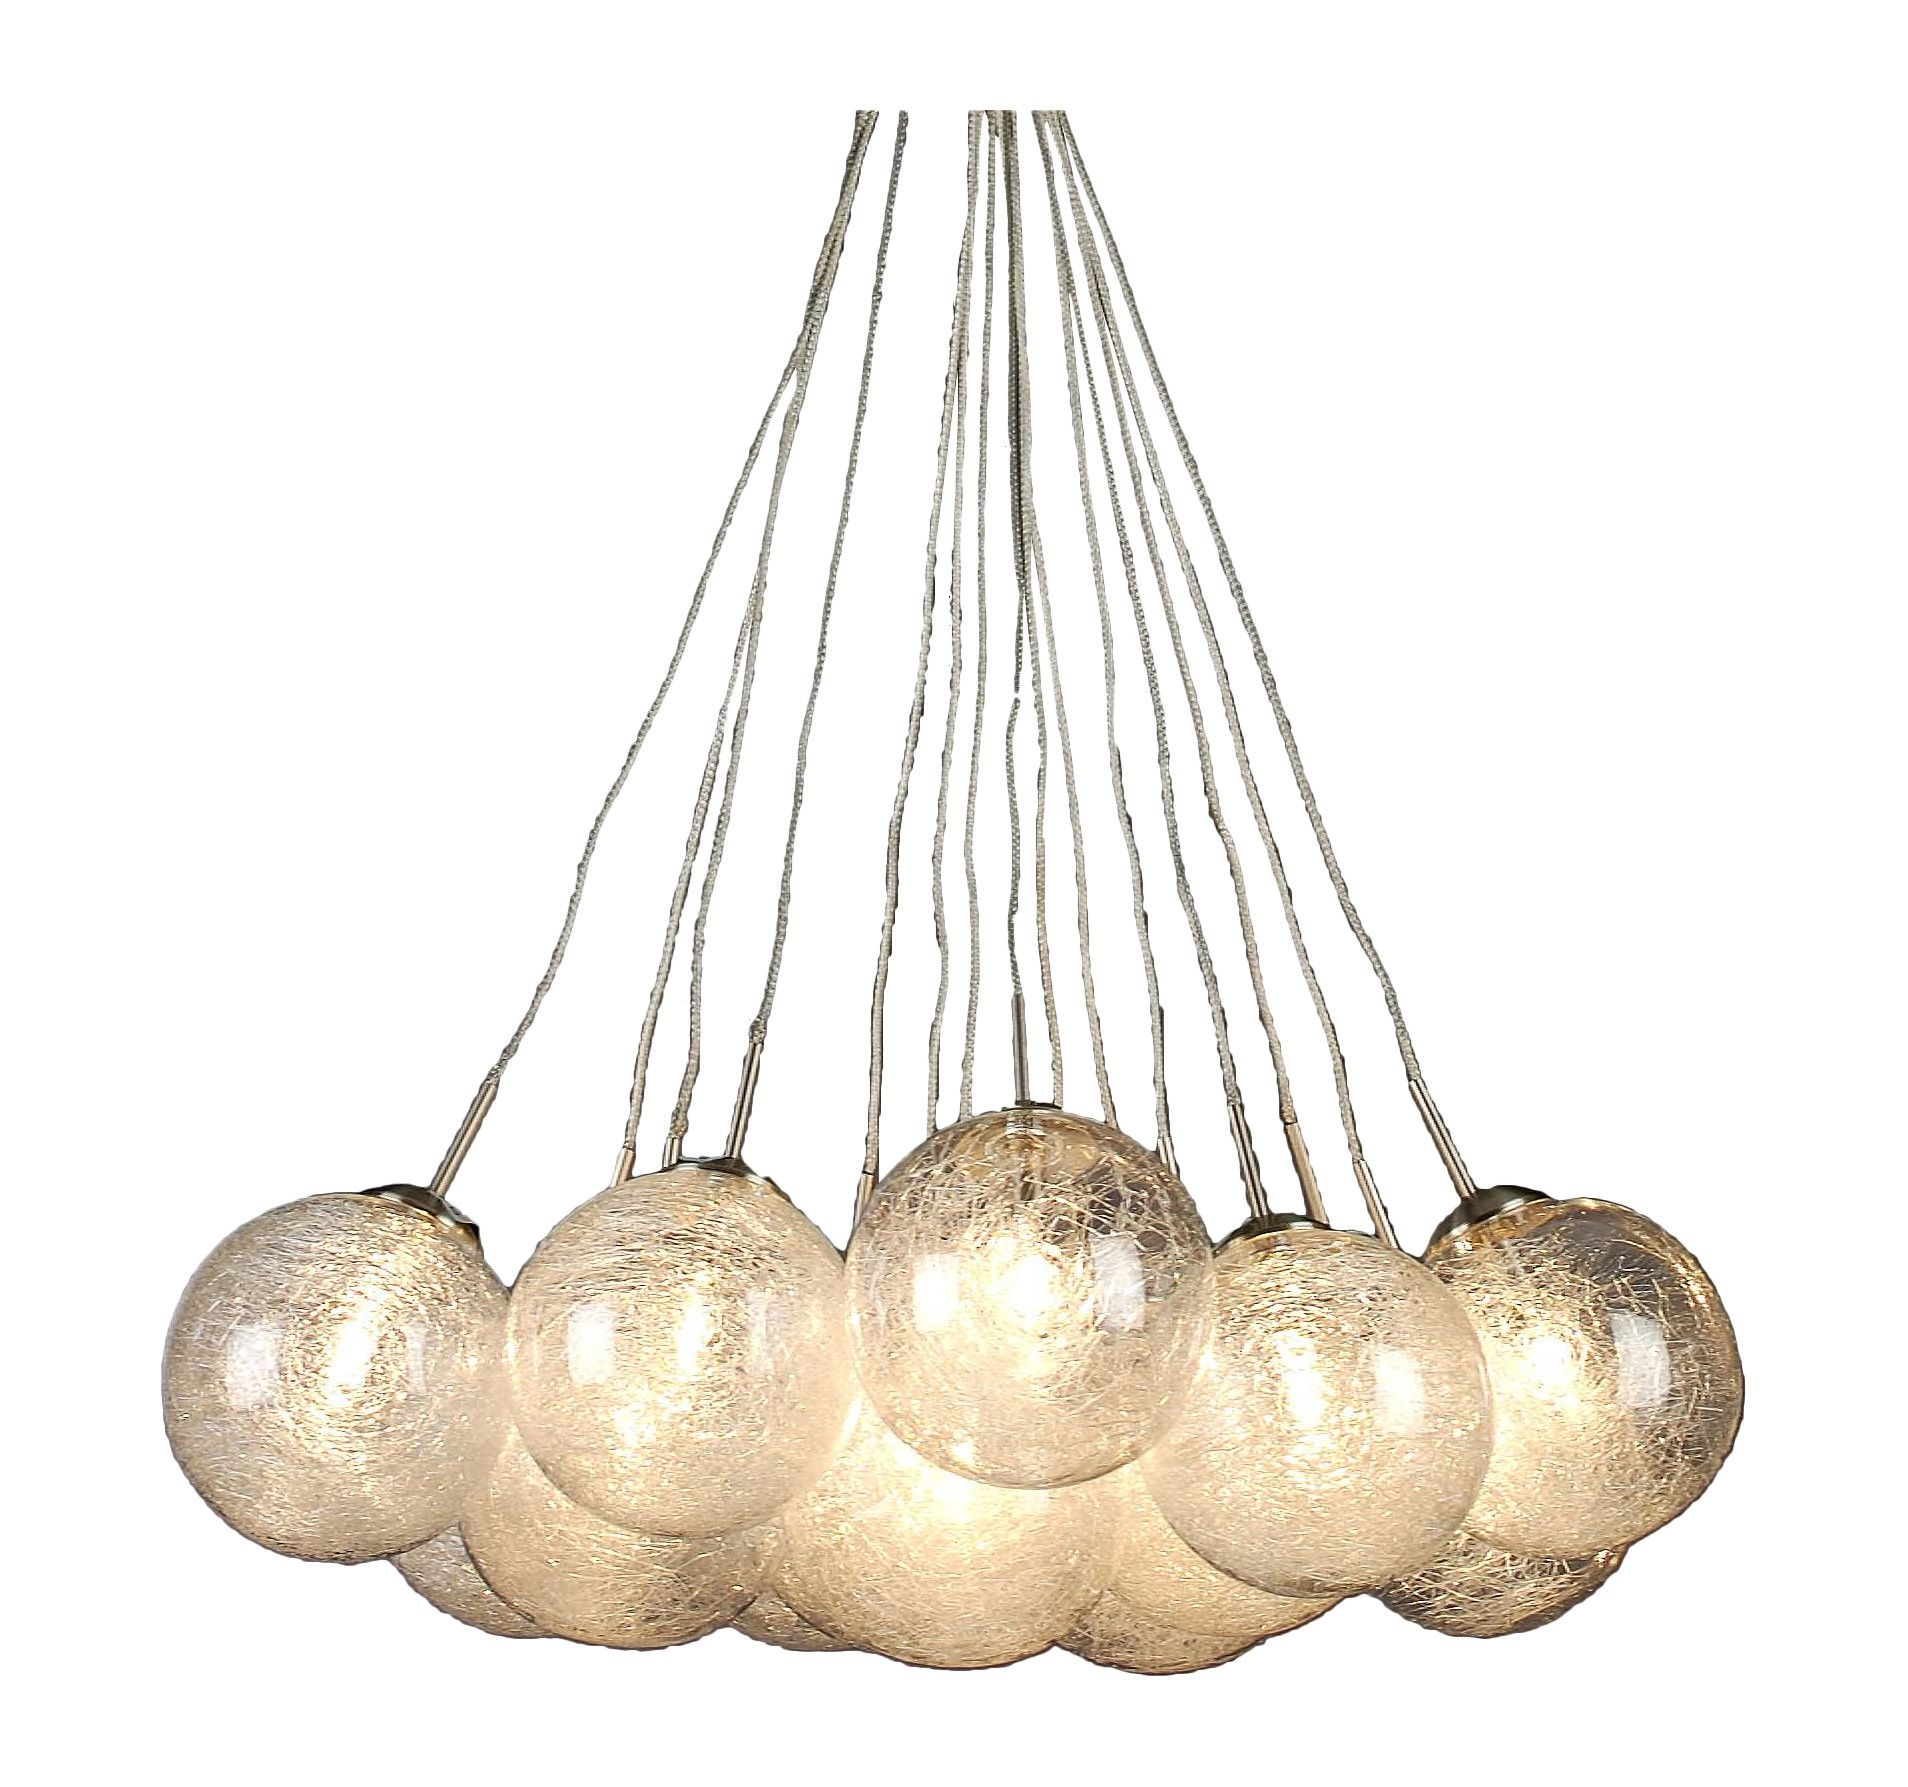 Trend lighting corp 17 orb chandelier reviews wayfair dining trend lighting corp 17 orb chandelier reviews wayfair aloadofball Image collections